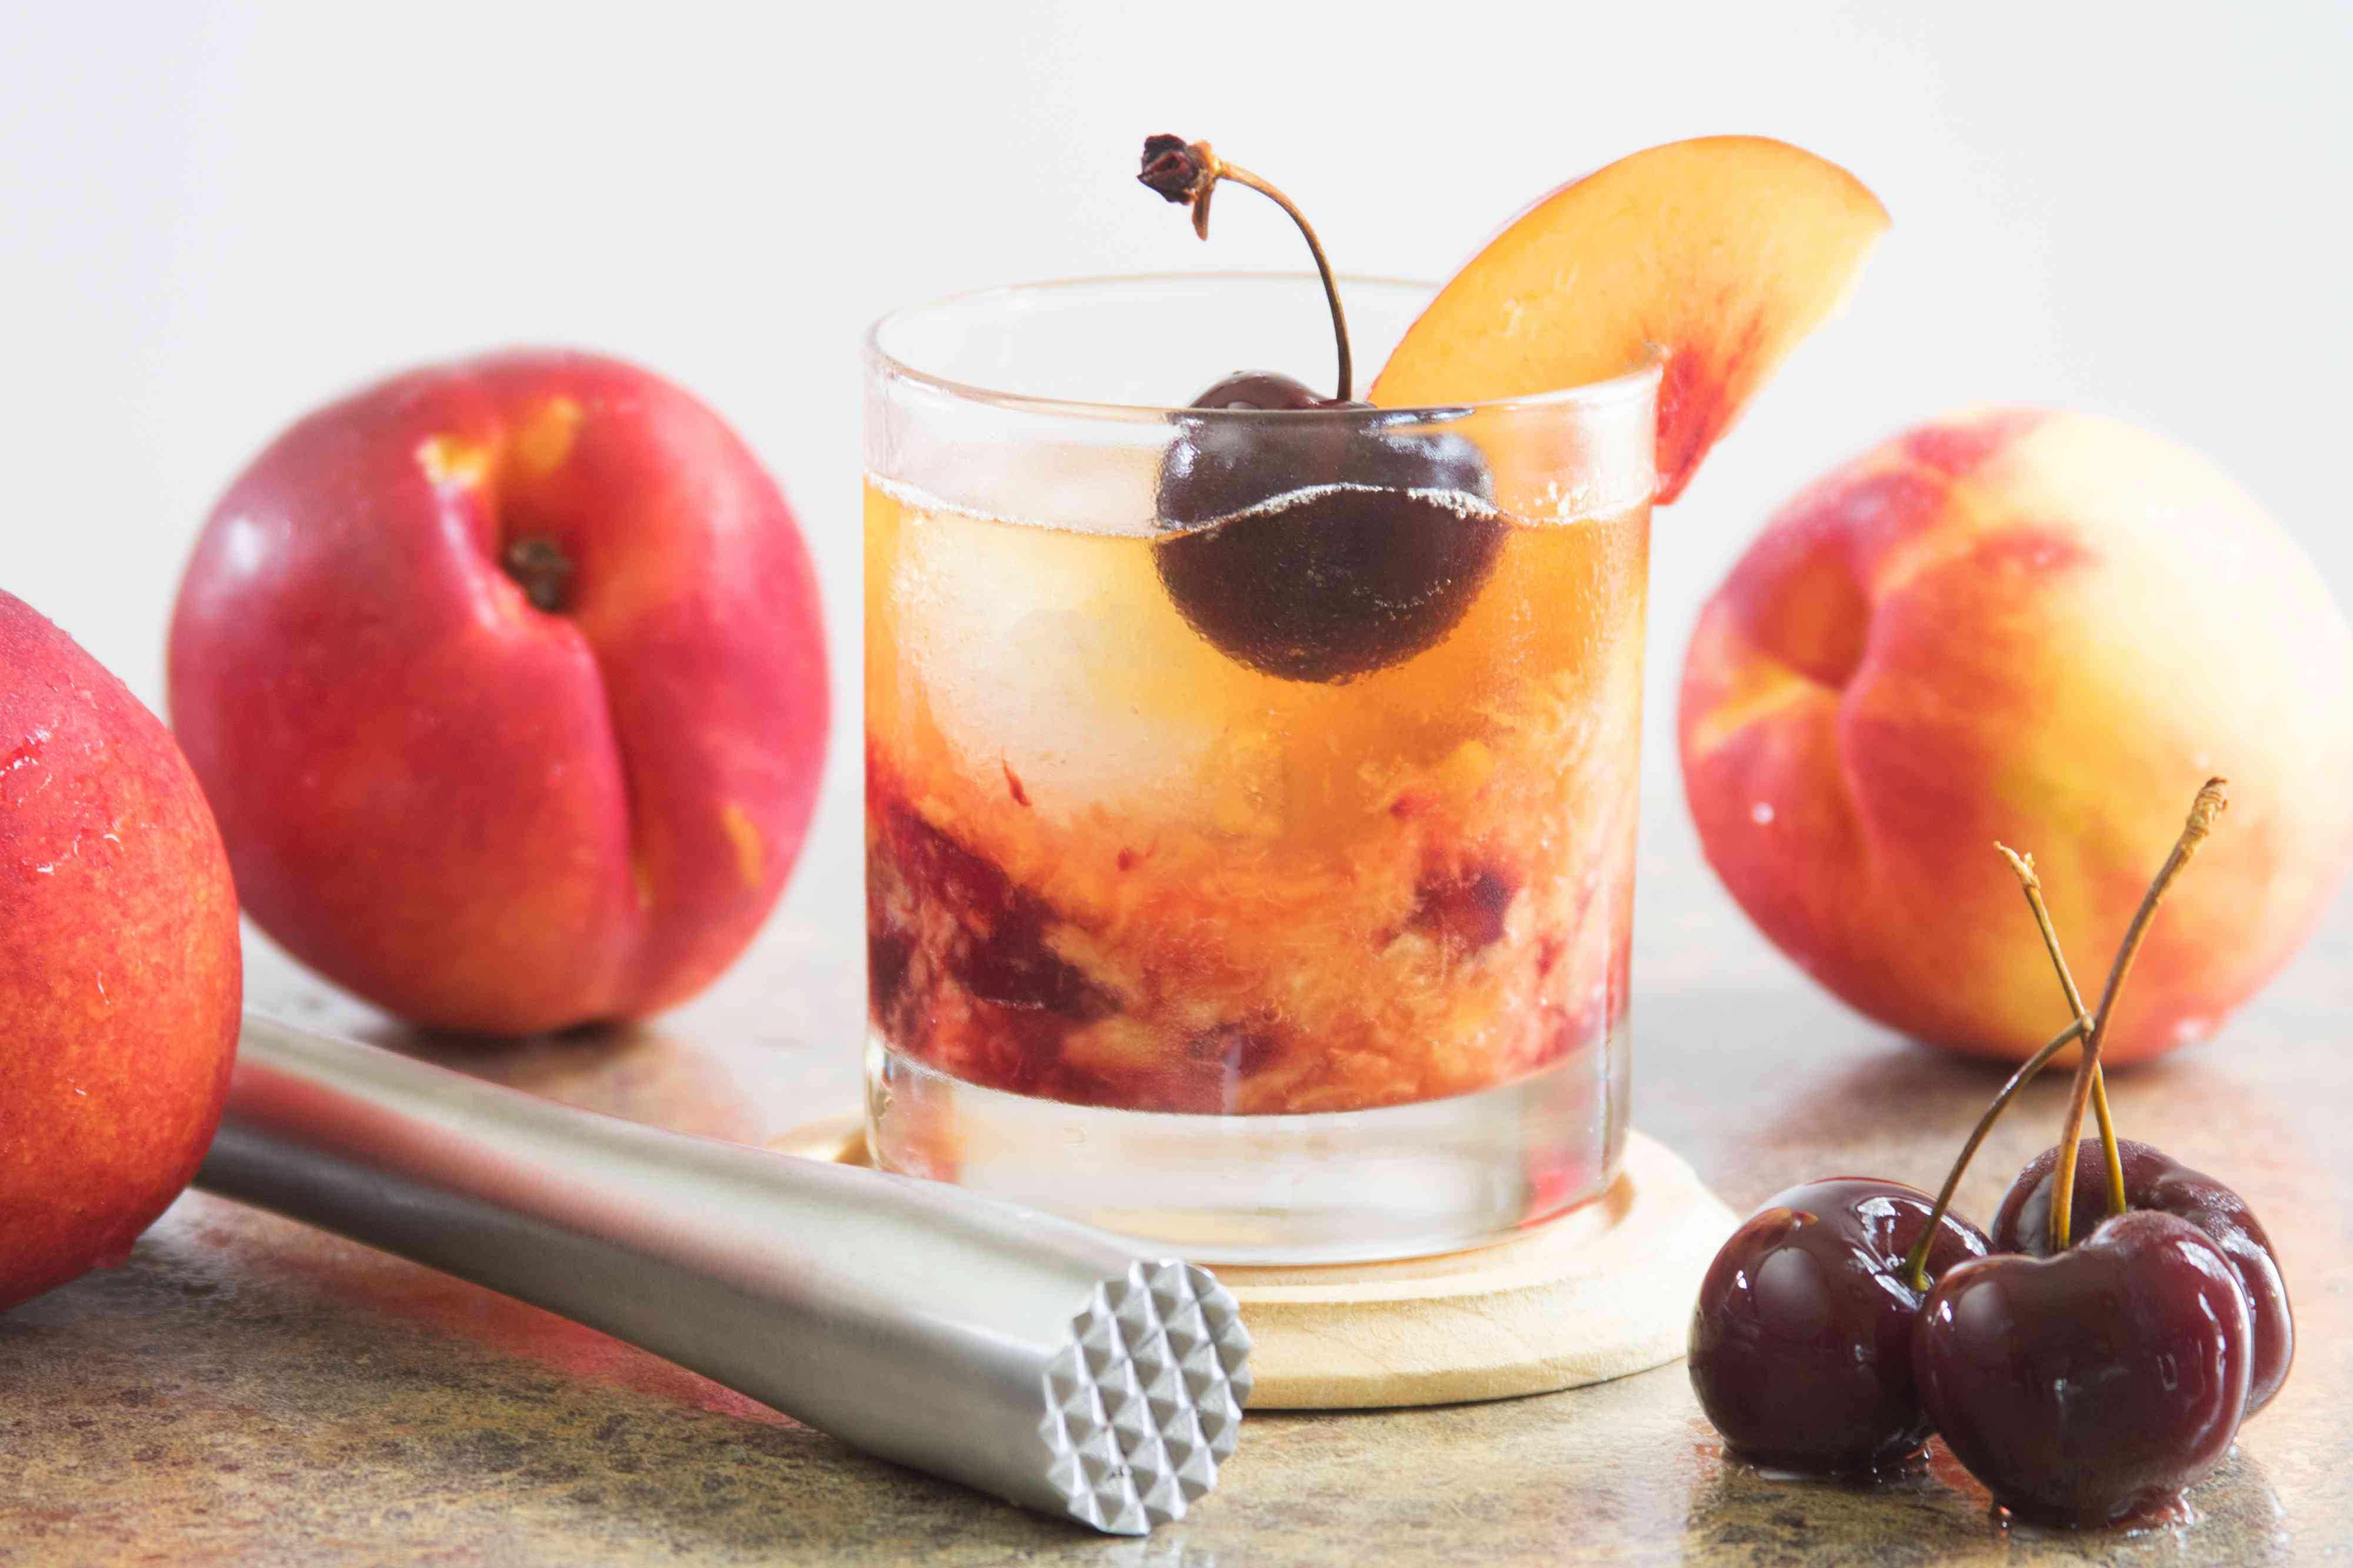 Reposado Old-Fashioned Cocktail With Tequila and Nectarines